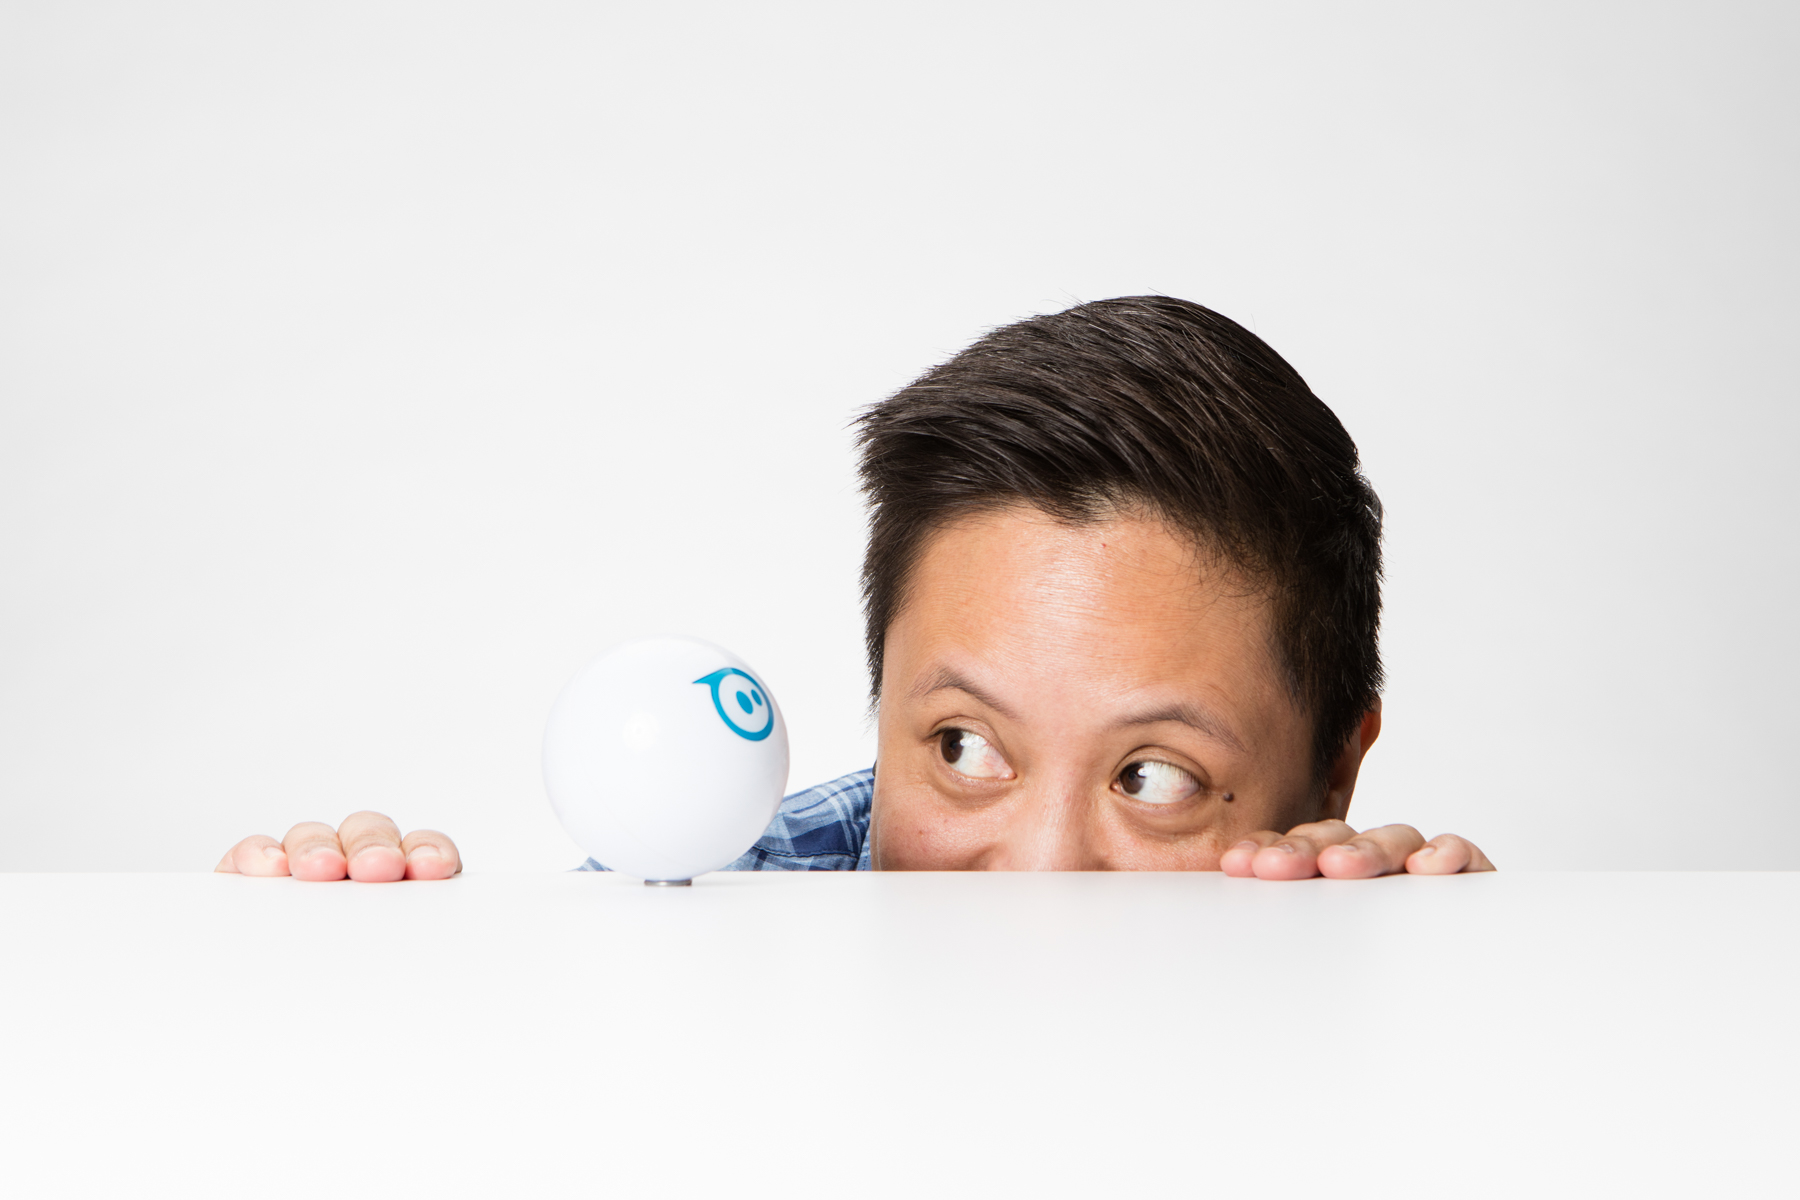 Portrait of women peaking at a Sphero robot in Boulder, Colorado.